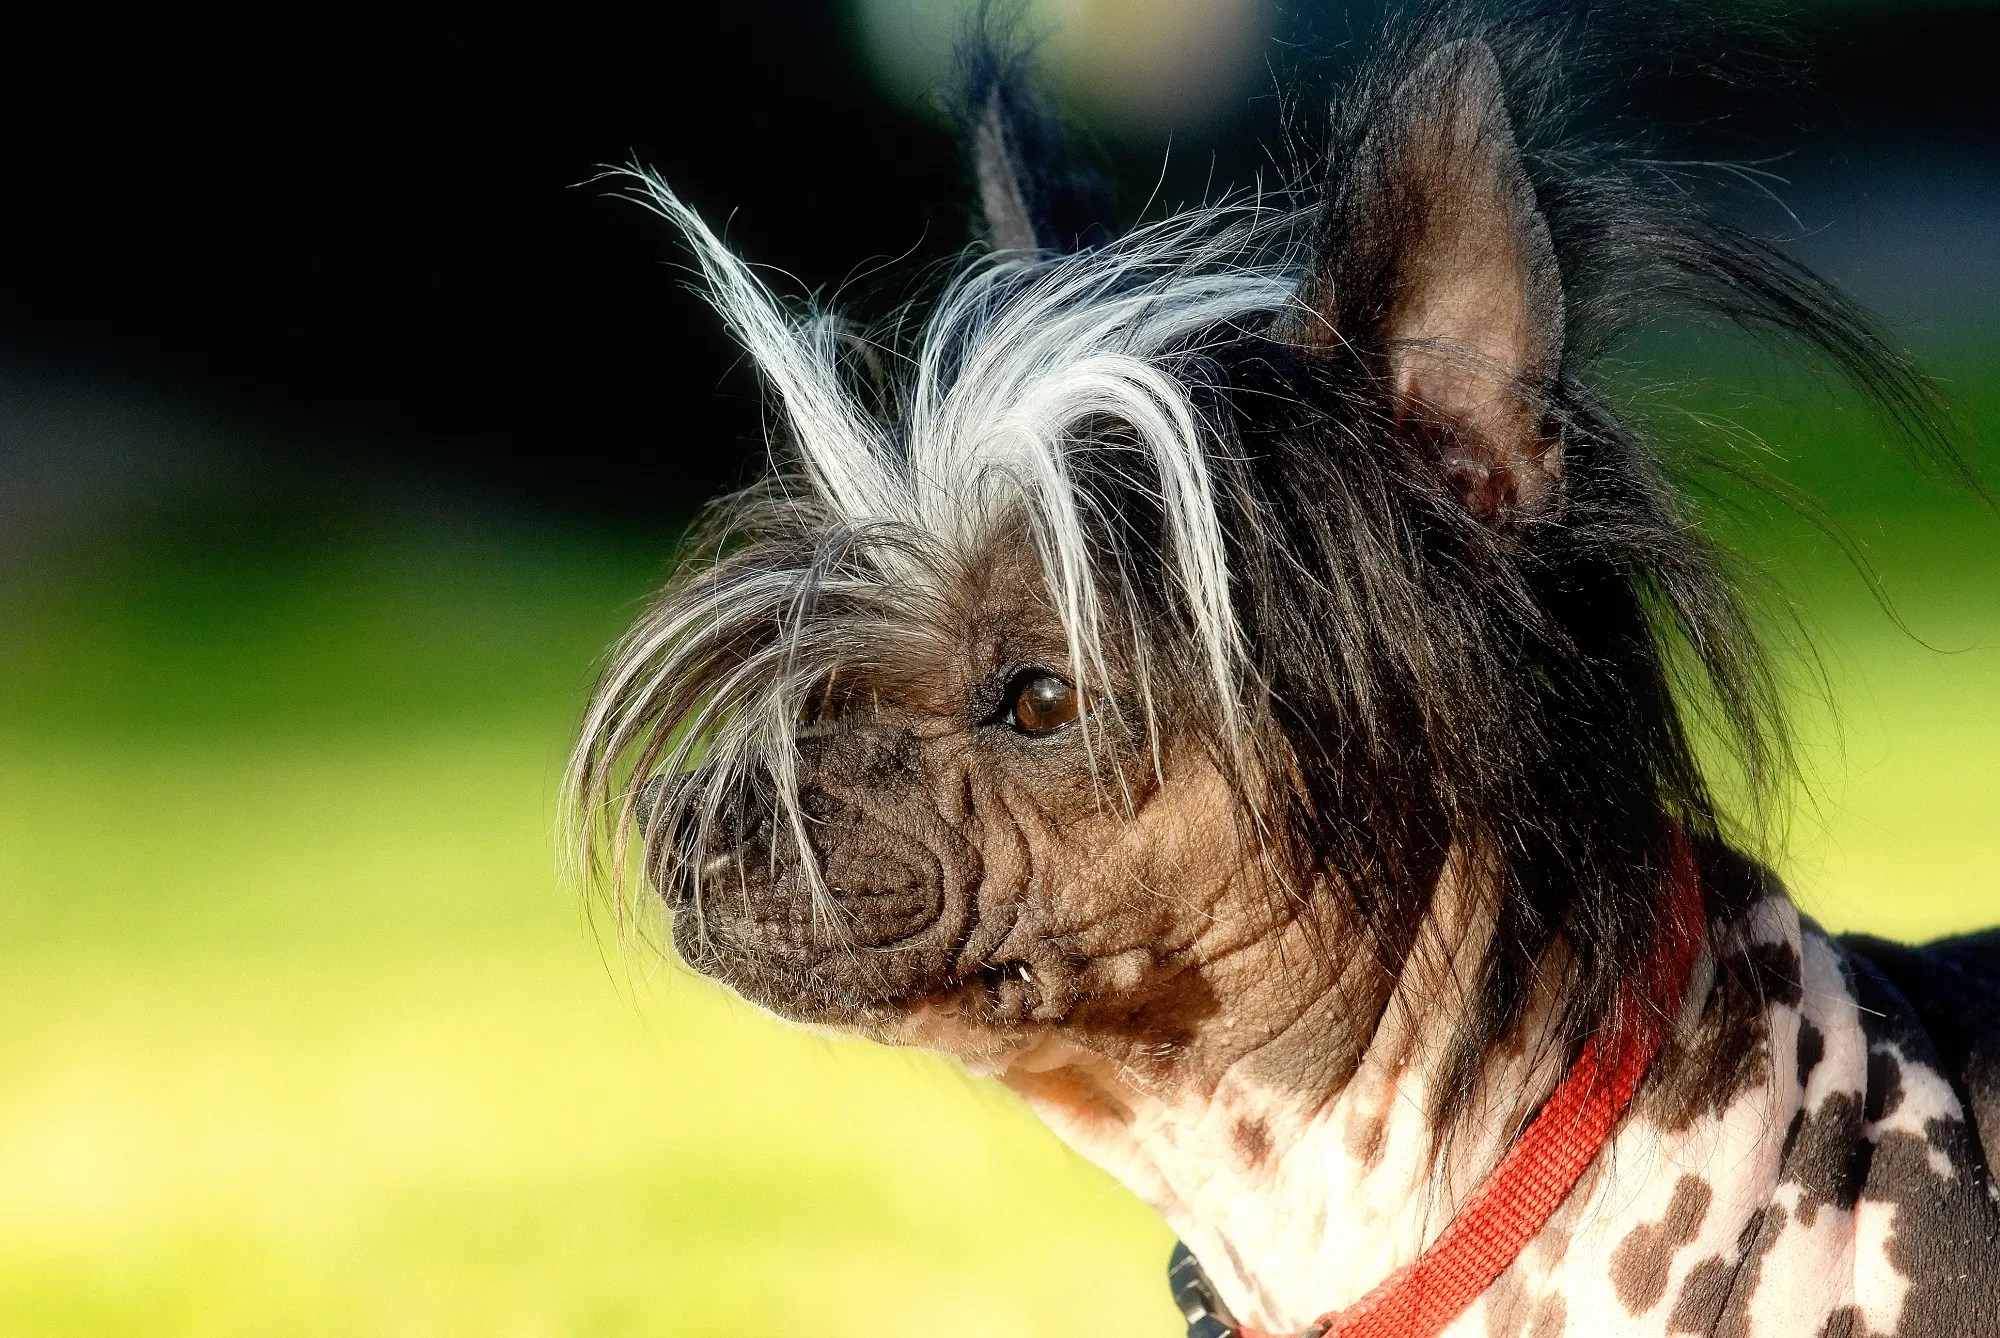 Cozy Of Ugliest Dog Breeds Richest Ugly Dog Breeds Ugly Hunting Dog Breeds bark post Ugly Dog Breeds